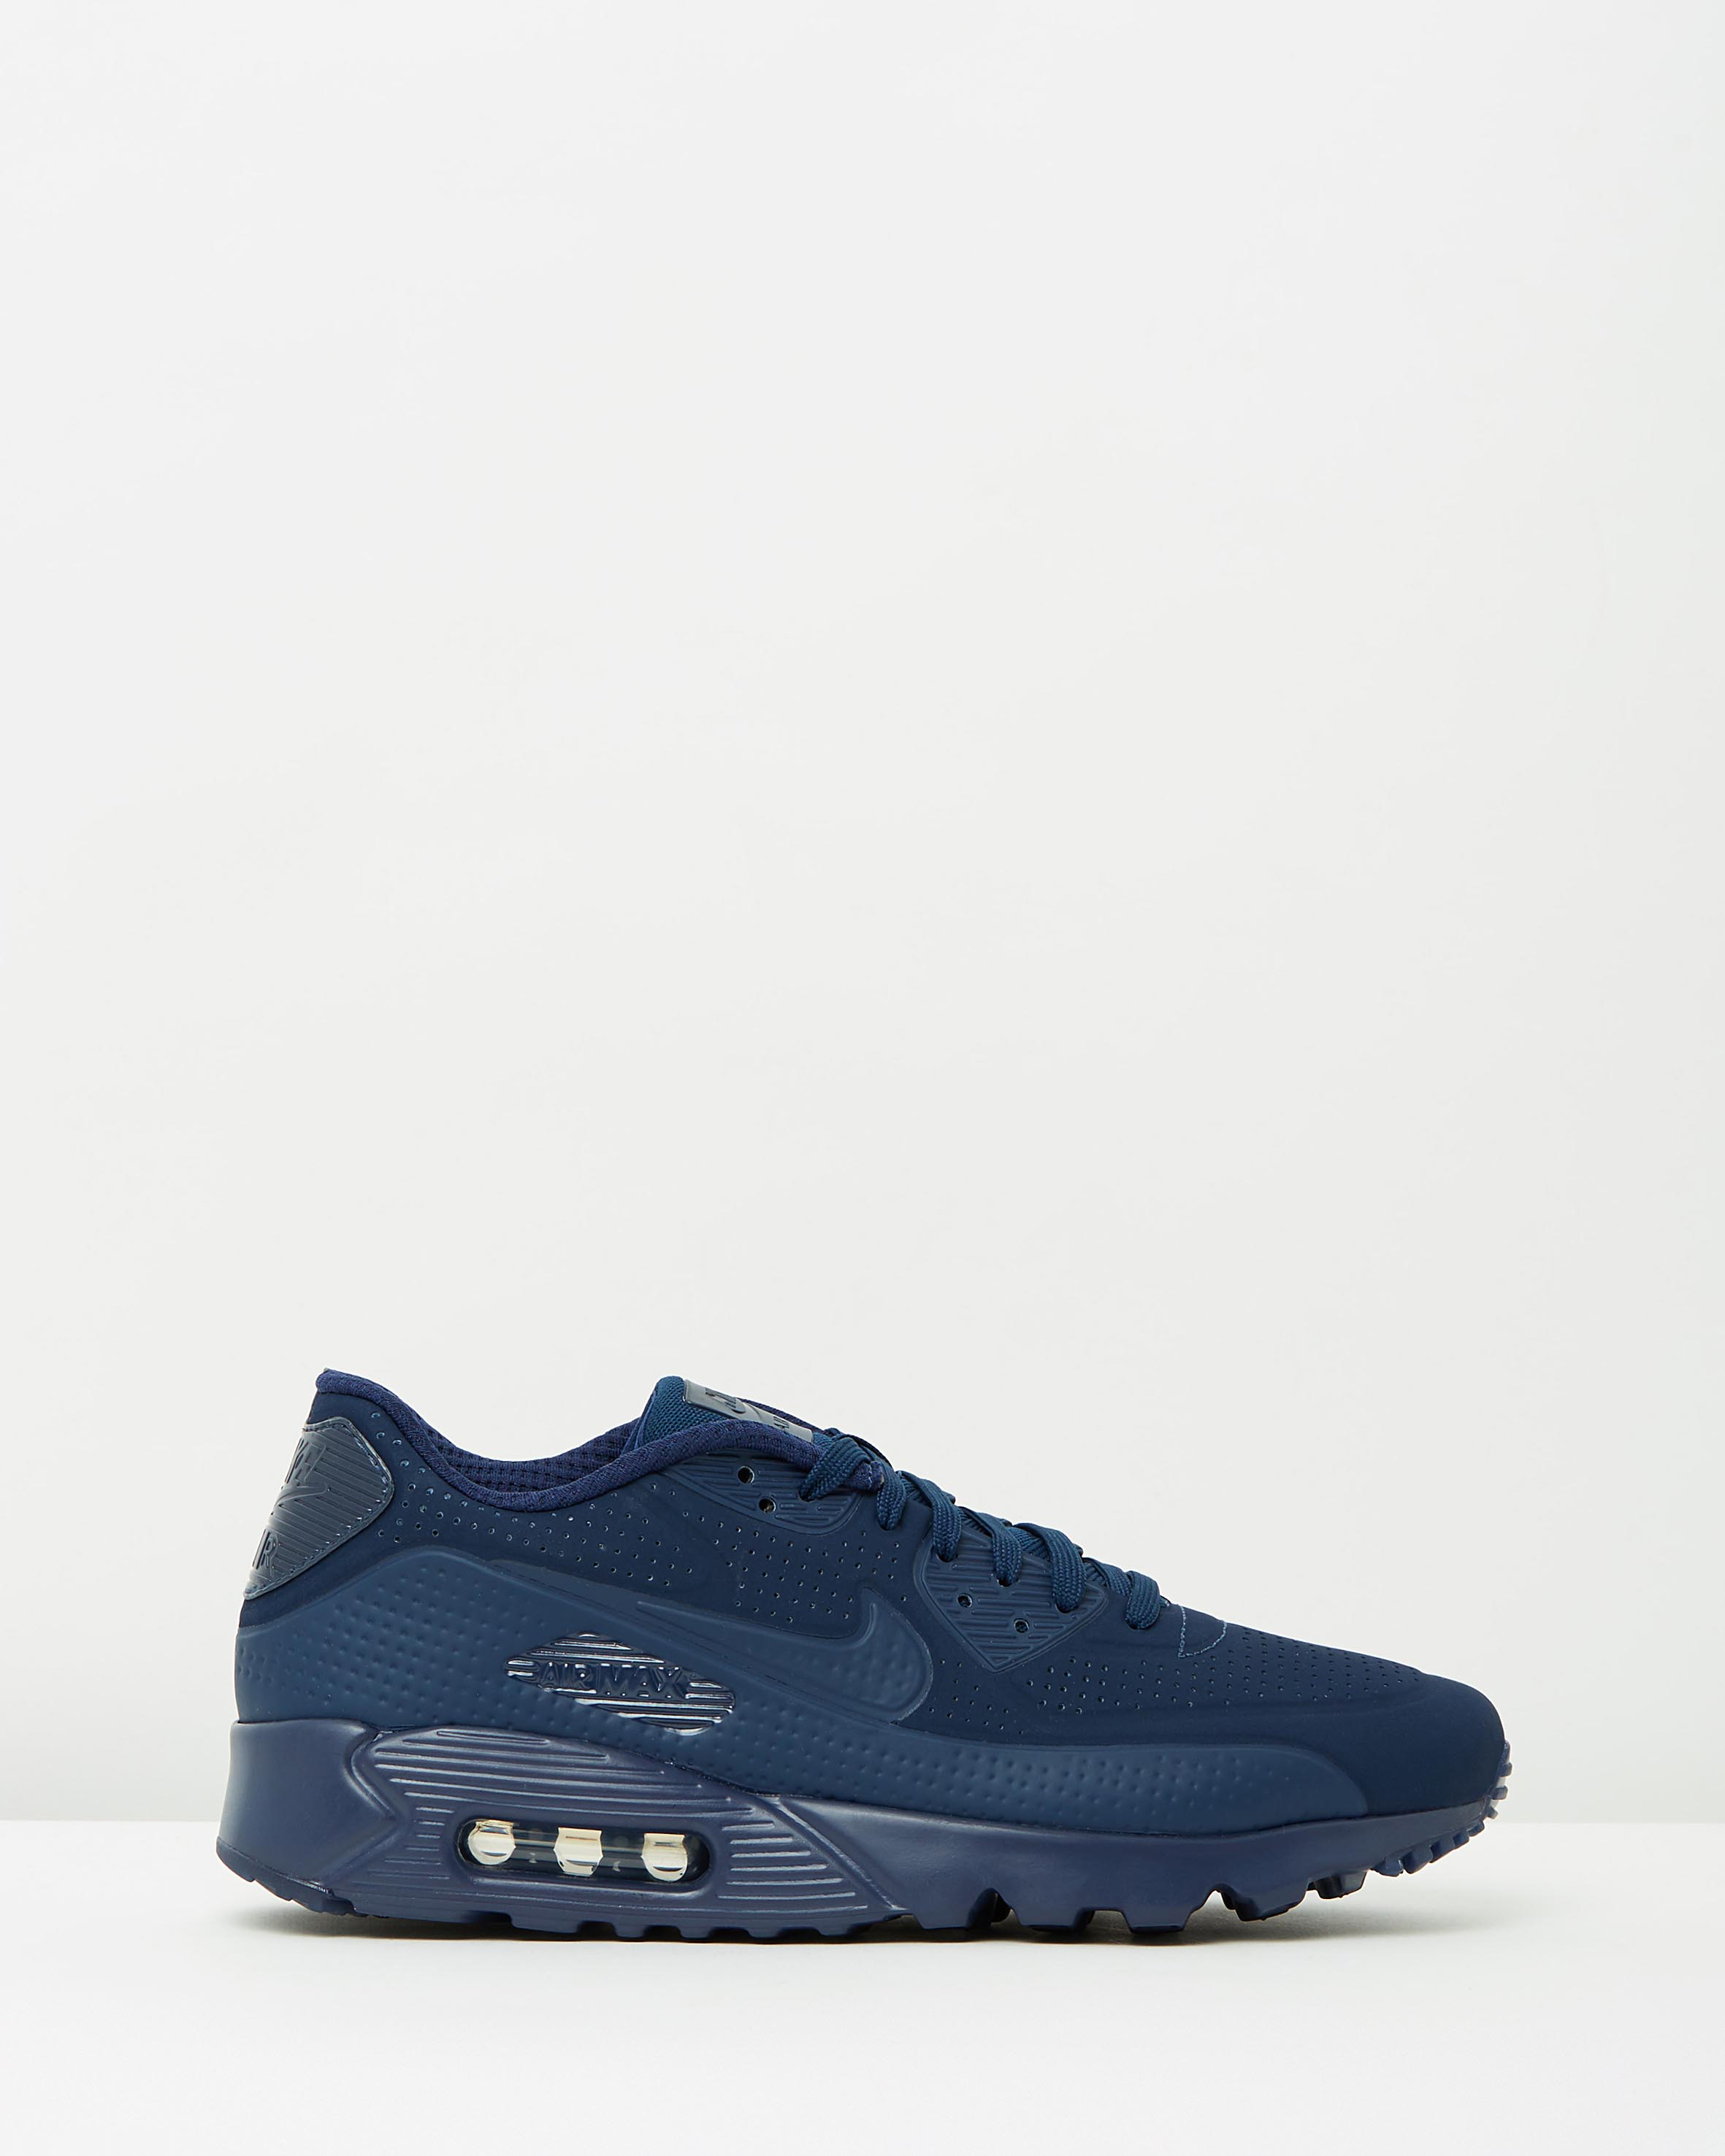 check out cc486 3a3de Nike Air Max 90 Ultra Moire Midnight Blue